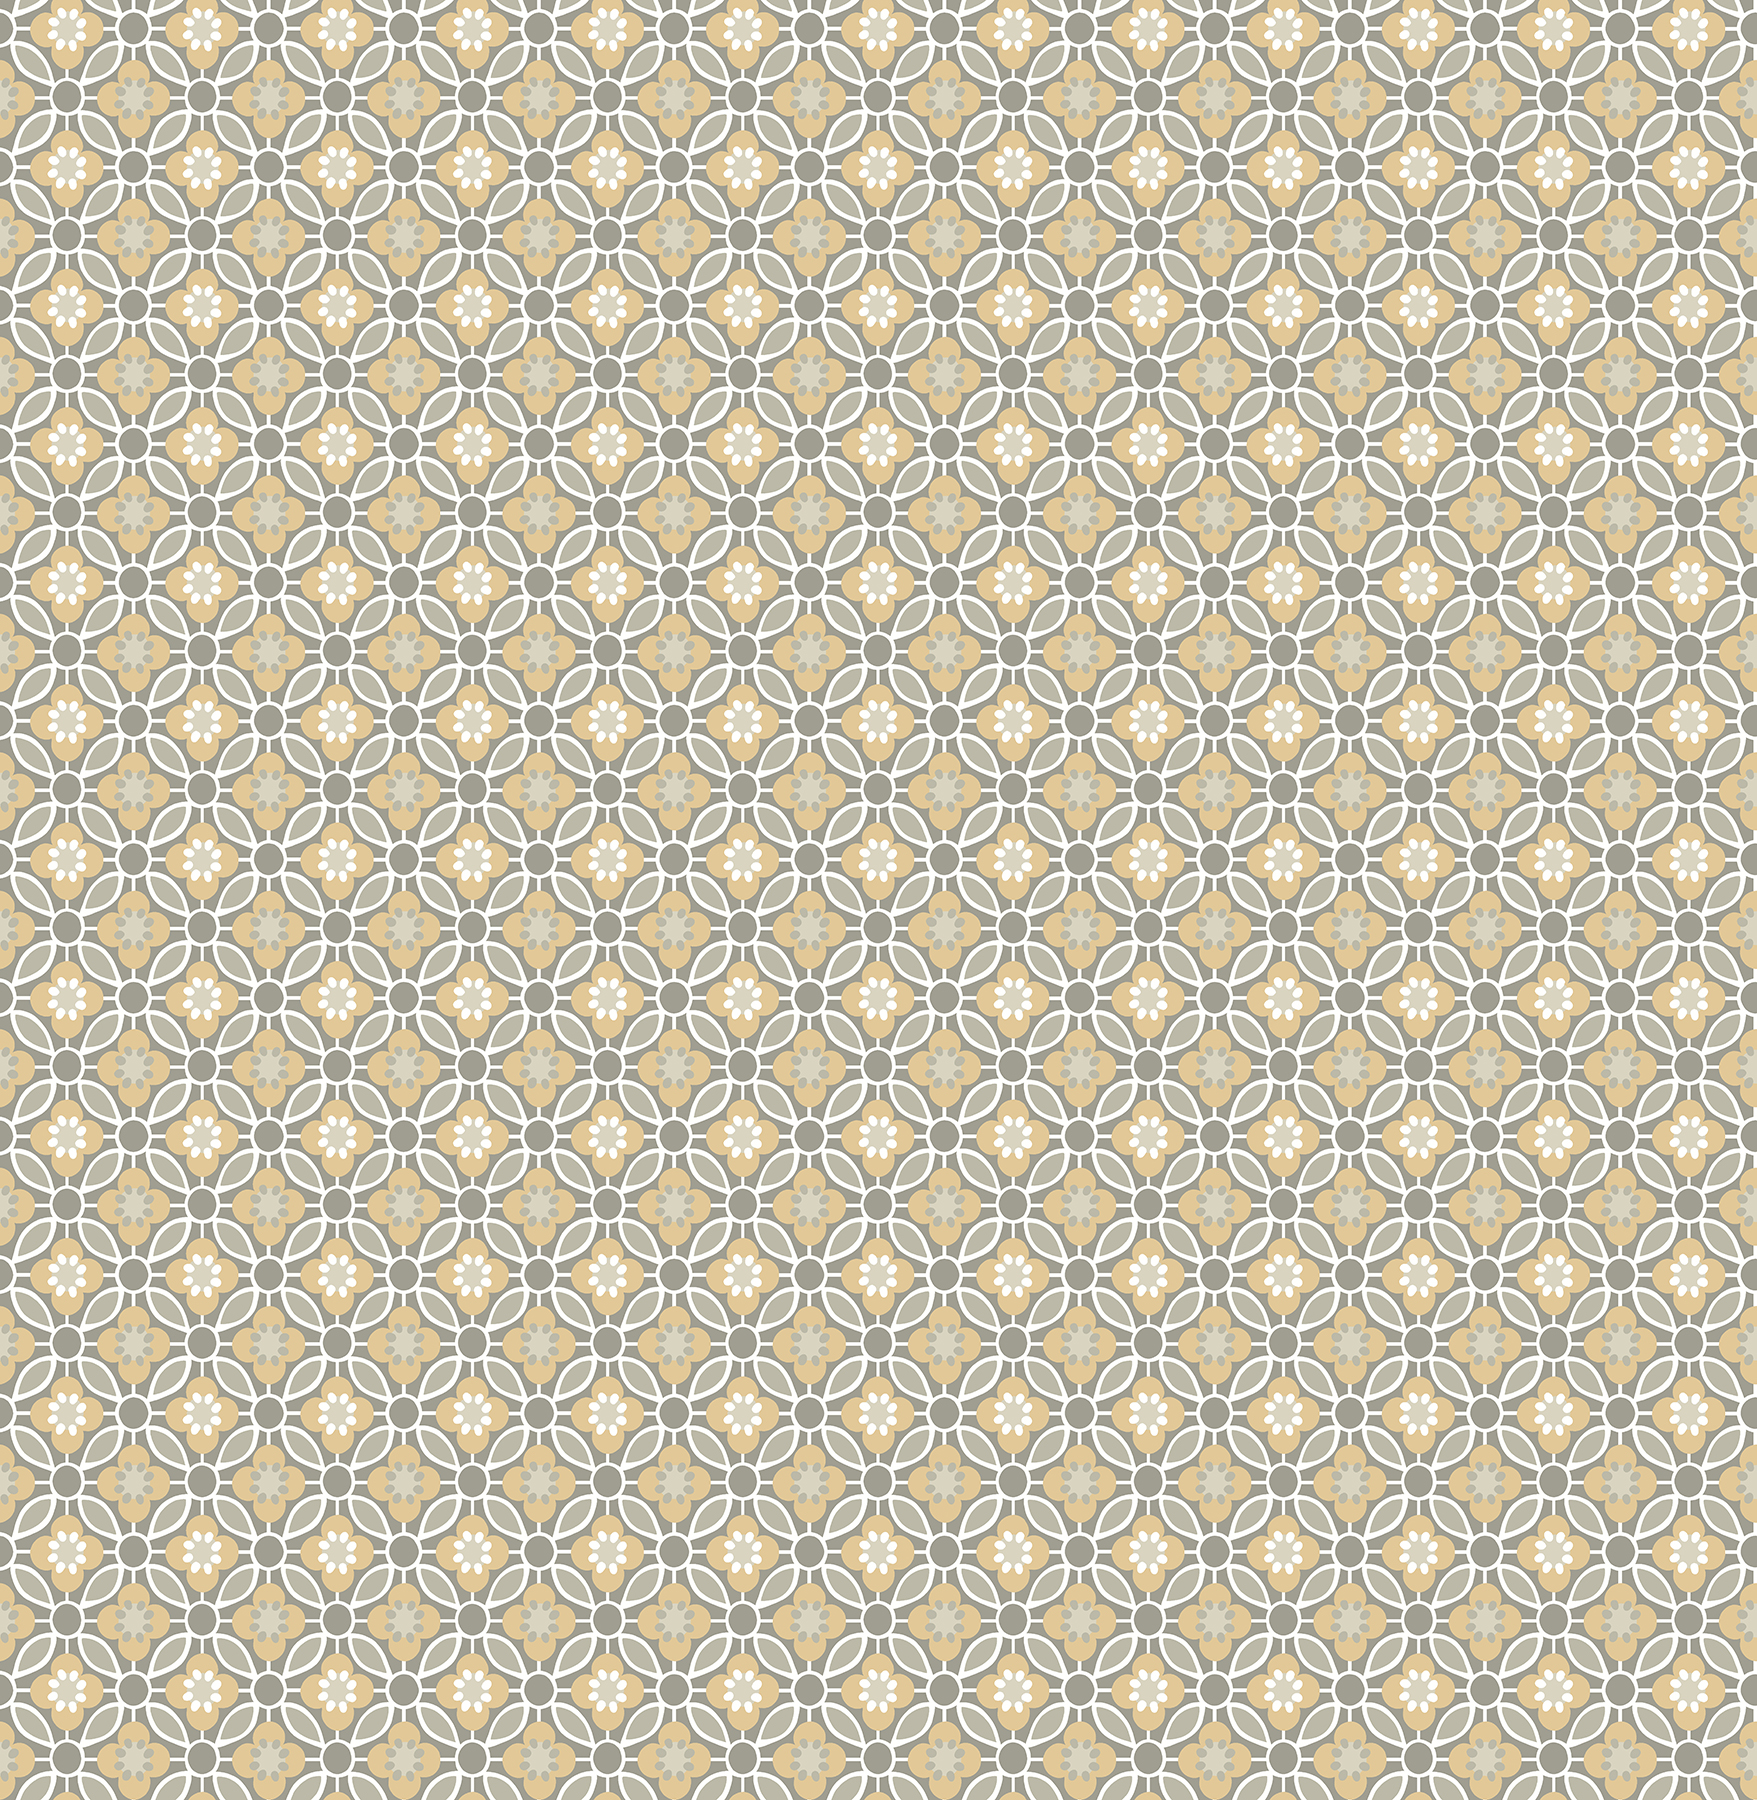 Picture of Audra Mustard Floral Wallpaper